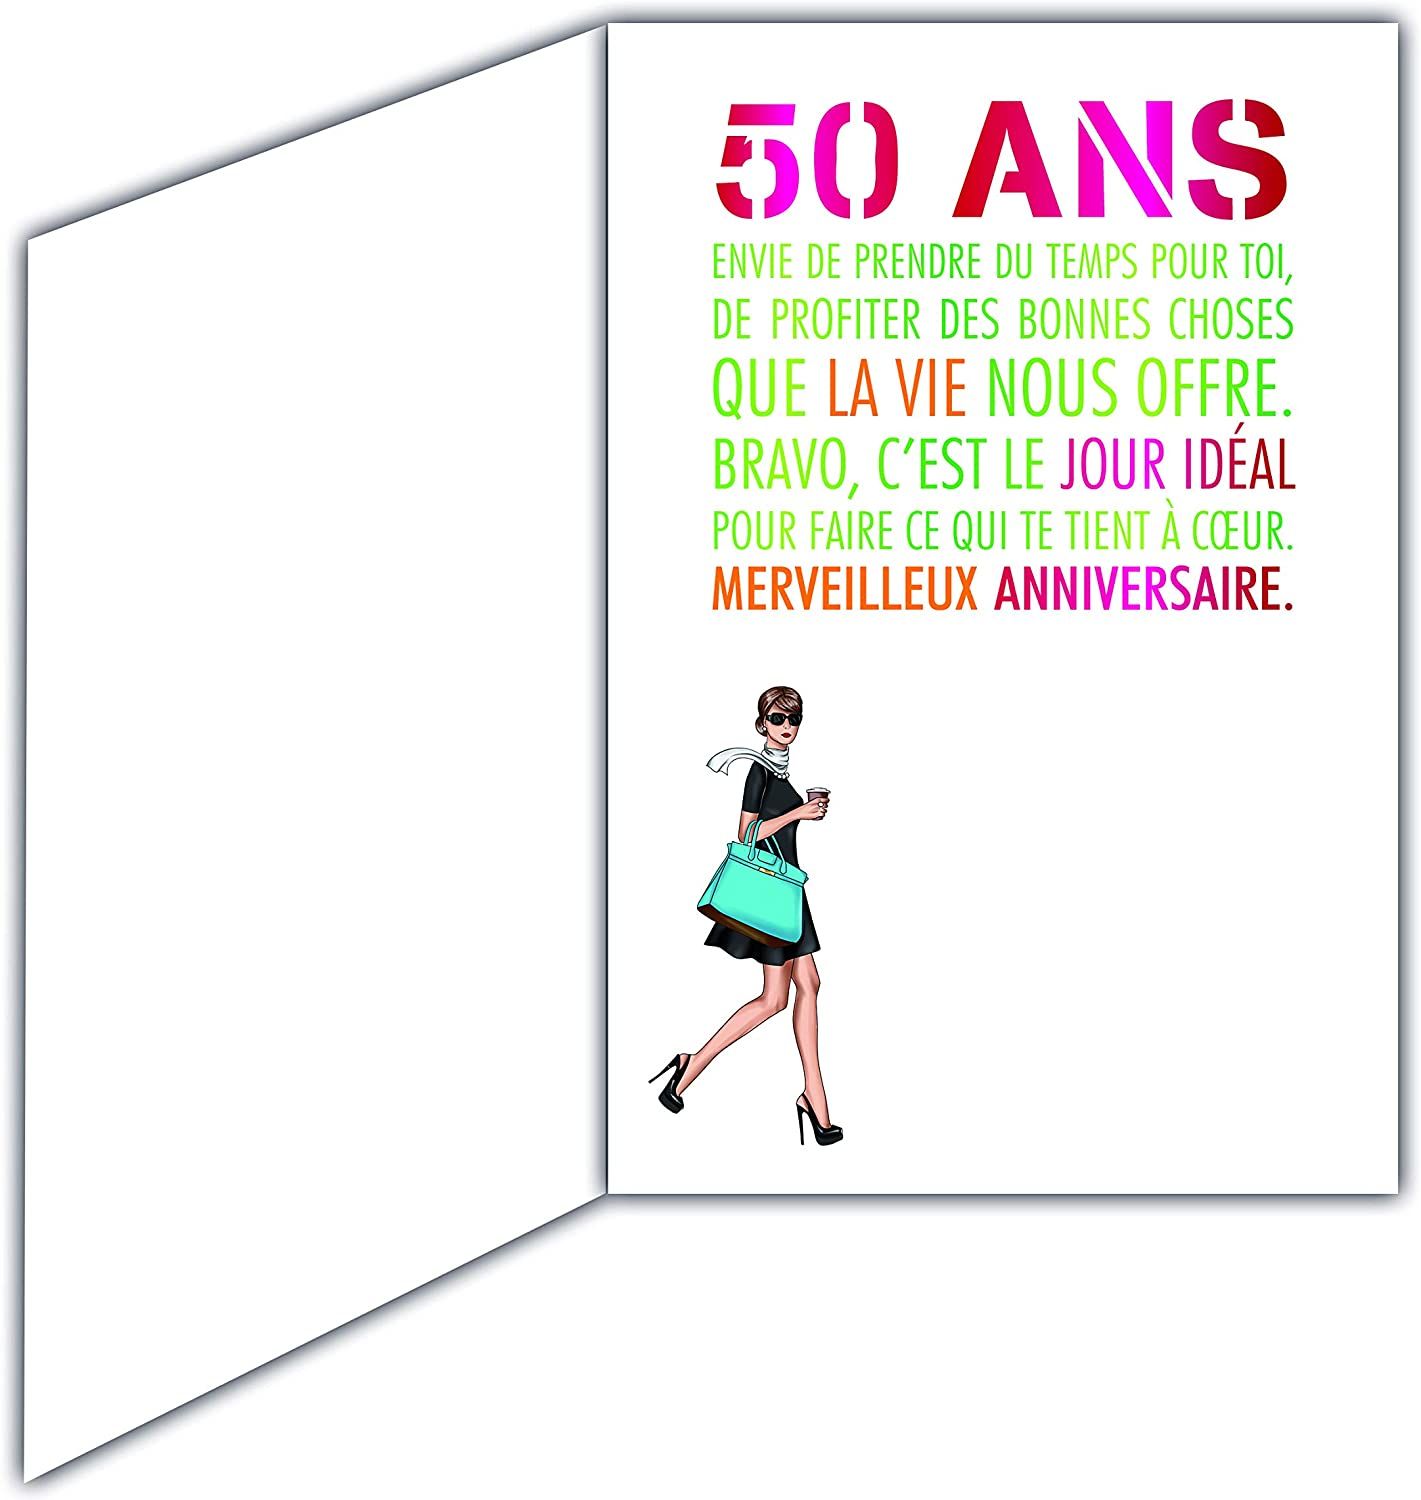 Afie Carte Anniversaire 50 Ans Femme Couleur Selon Disponibilite Rose Fuschia Or Cf Photos Fleurs Dorure Fuchsia Rose Amazon Fr Fournitures De Bureau